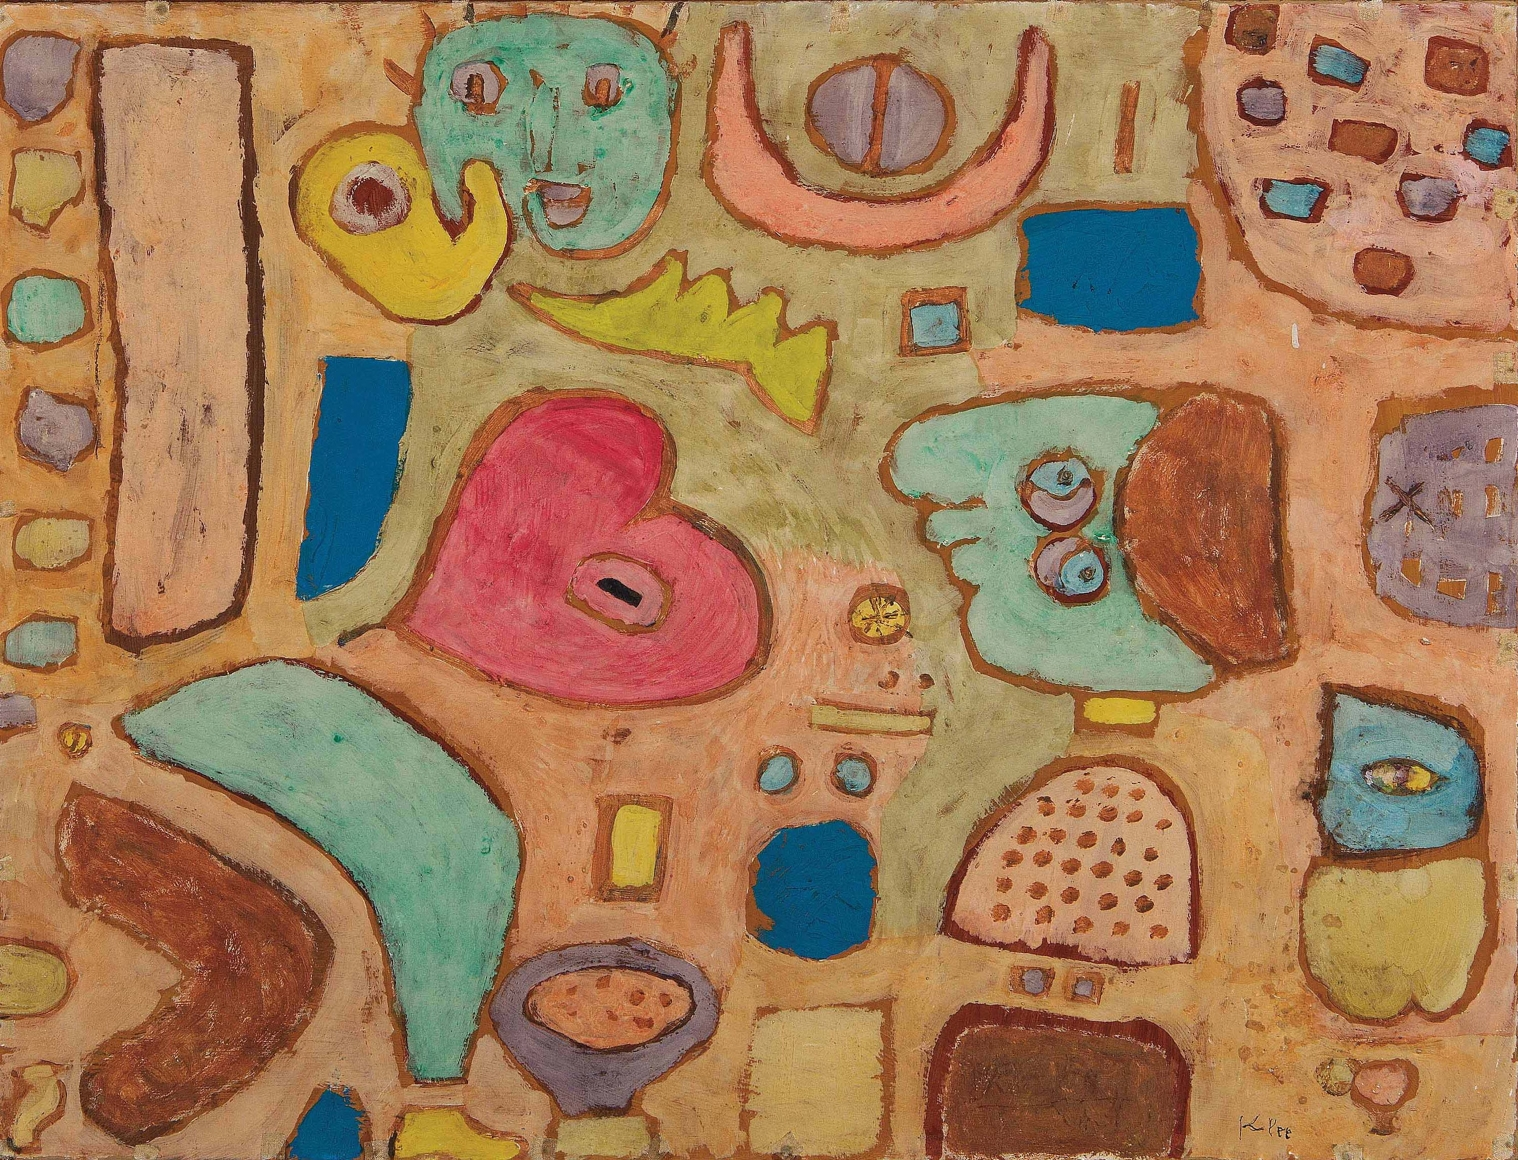 Paul Klee, Das kranke Herz (The Sick Heart), 1939, Colored paste on cardboard on wooden strainer, 16 x 21 1/4 in. (40.6 x 54 cm), Signed lower right: Klee